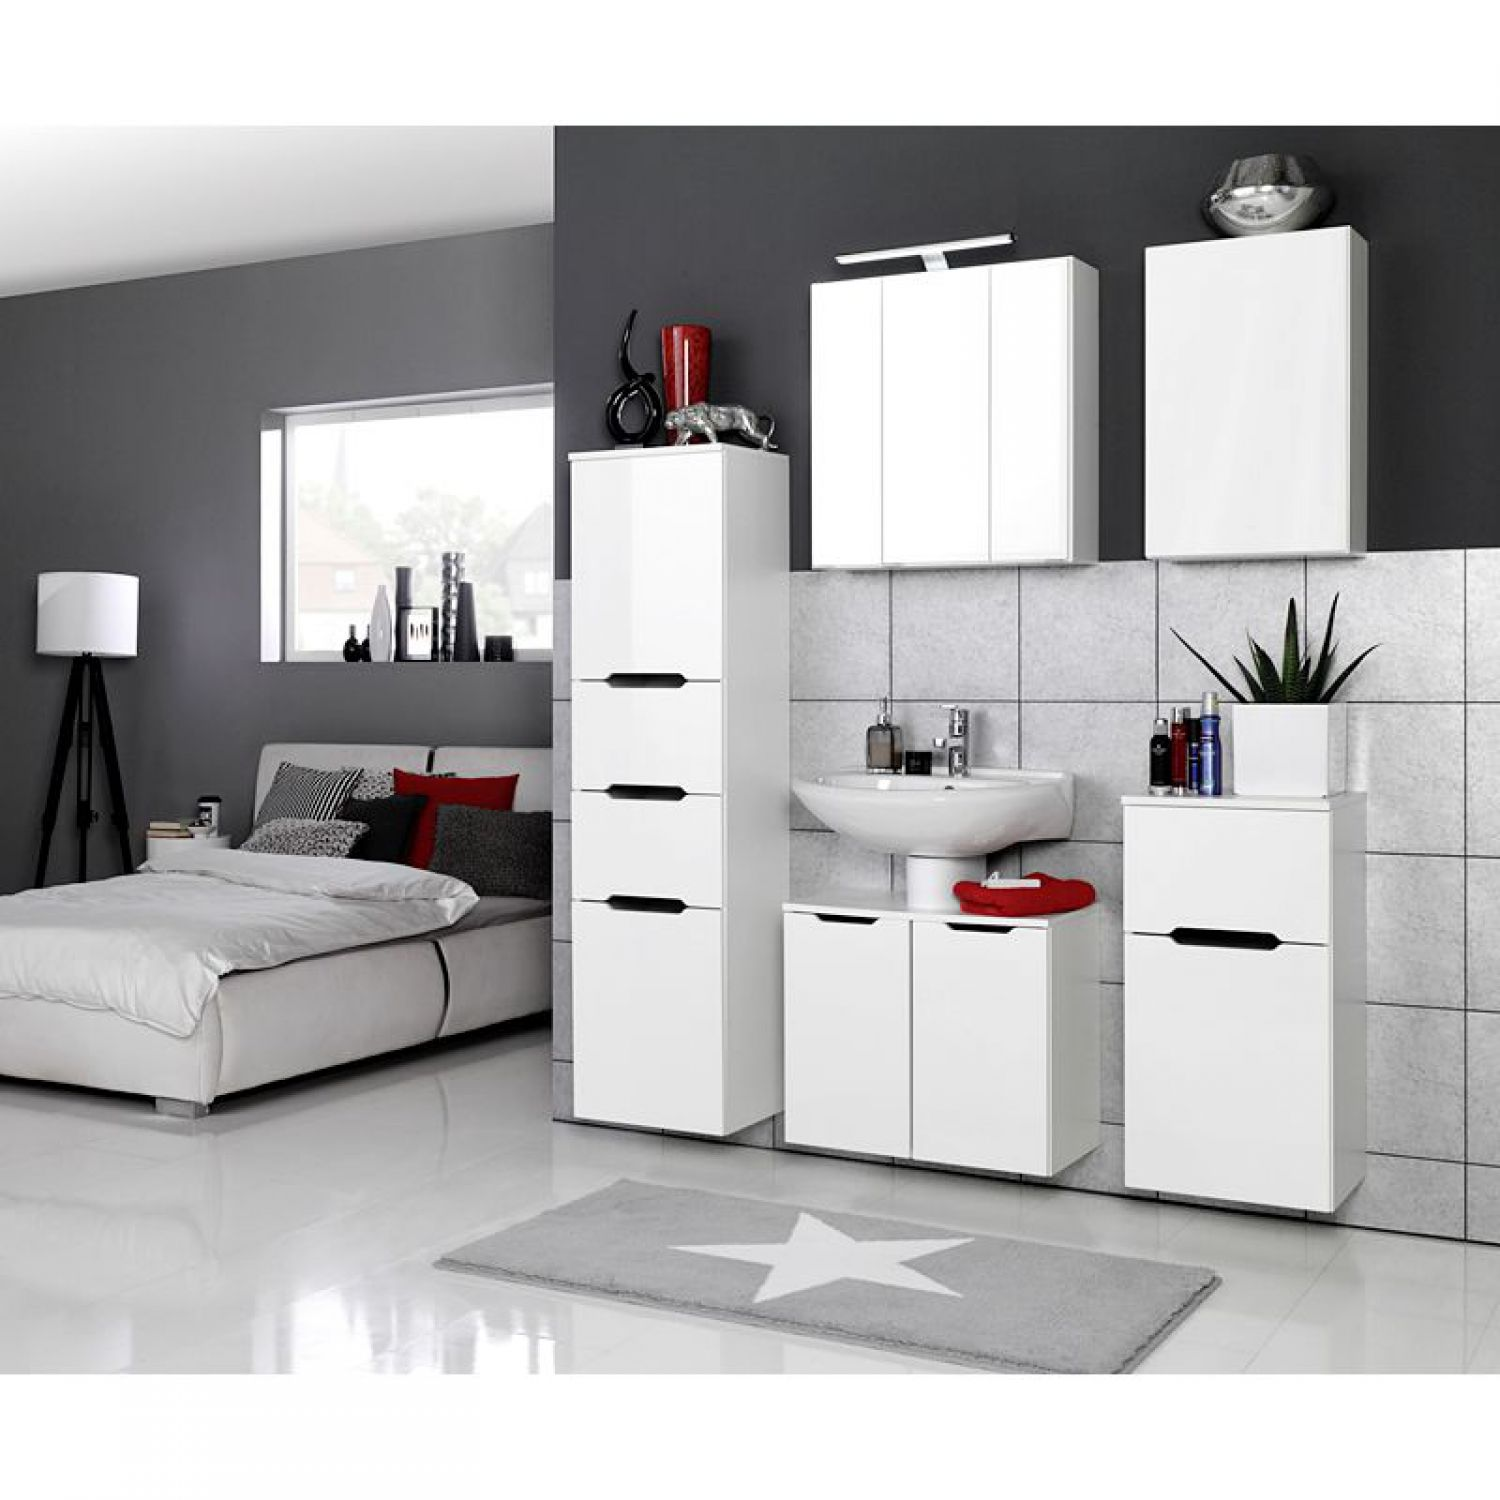 badezimmerm bel h ngeschrank hochglanz wei badm bel wandschrank badschrank. Black Bedroom Furniture Sets. Home Design Ideas